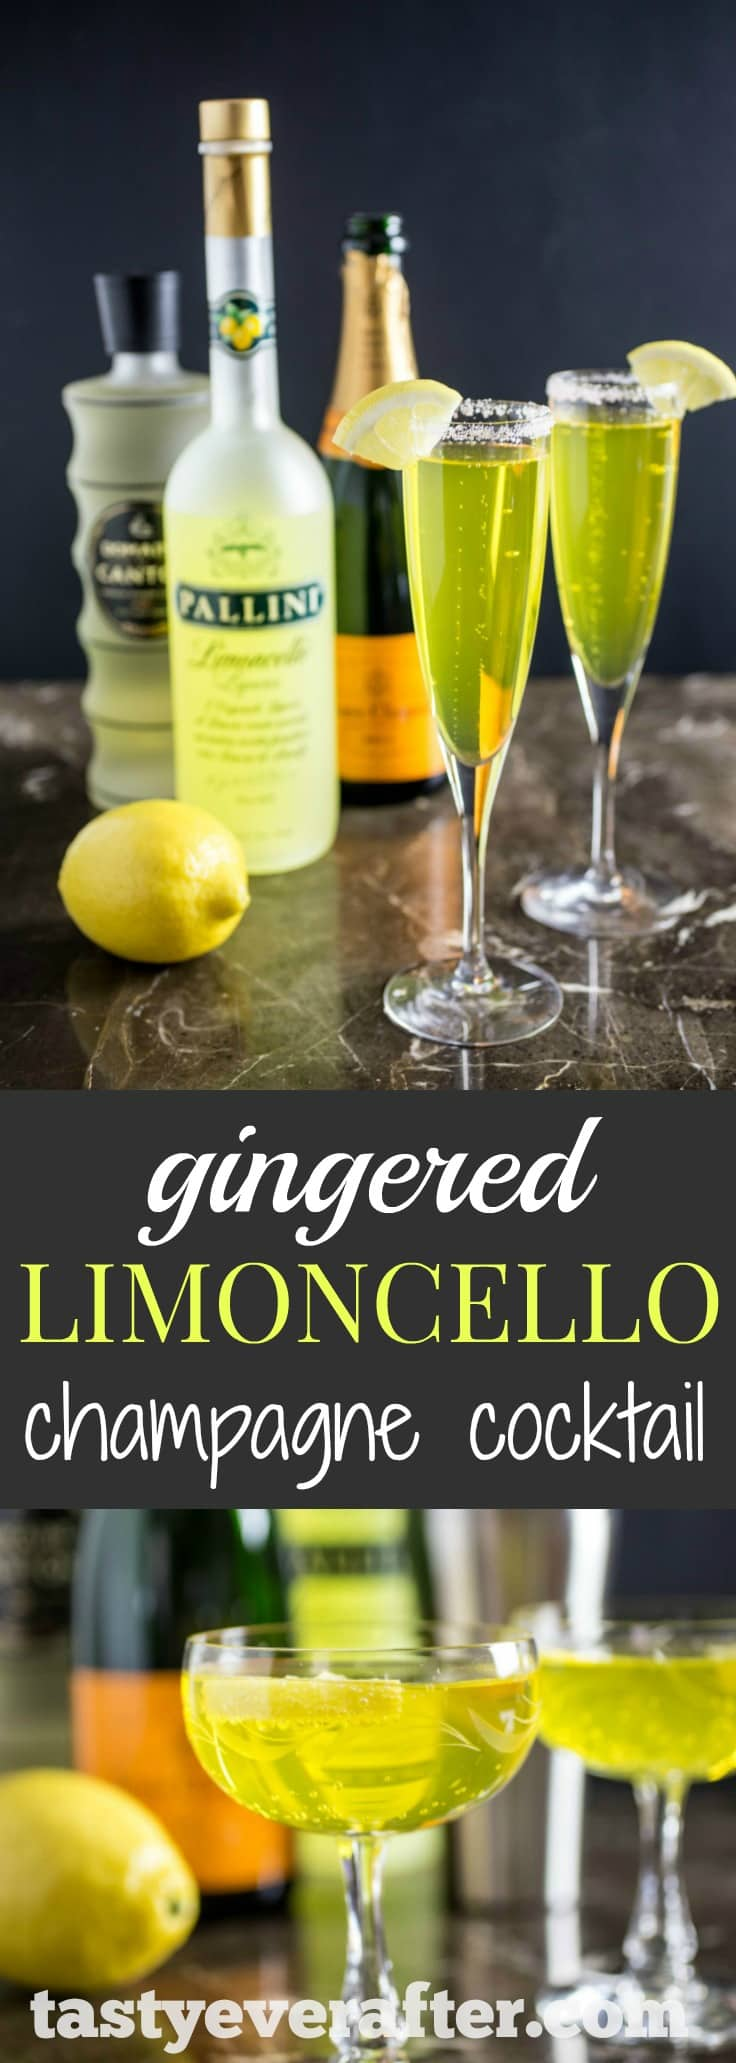 Gingered Limoncello Champagne Cocktai